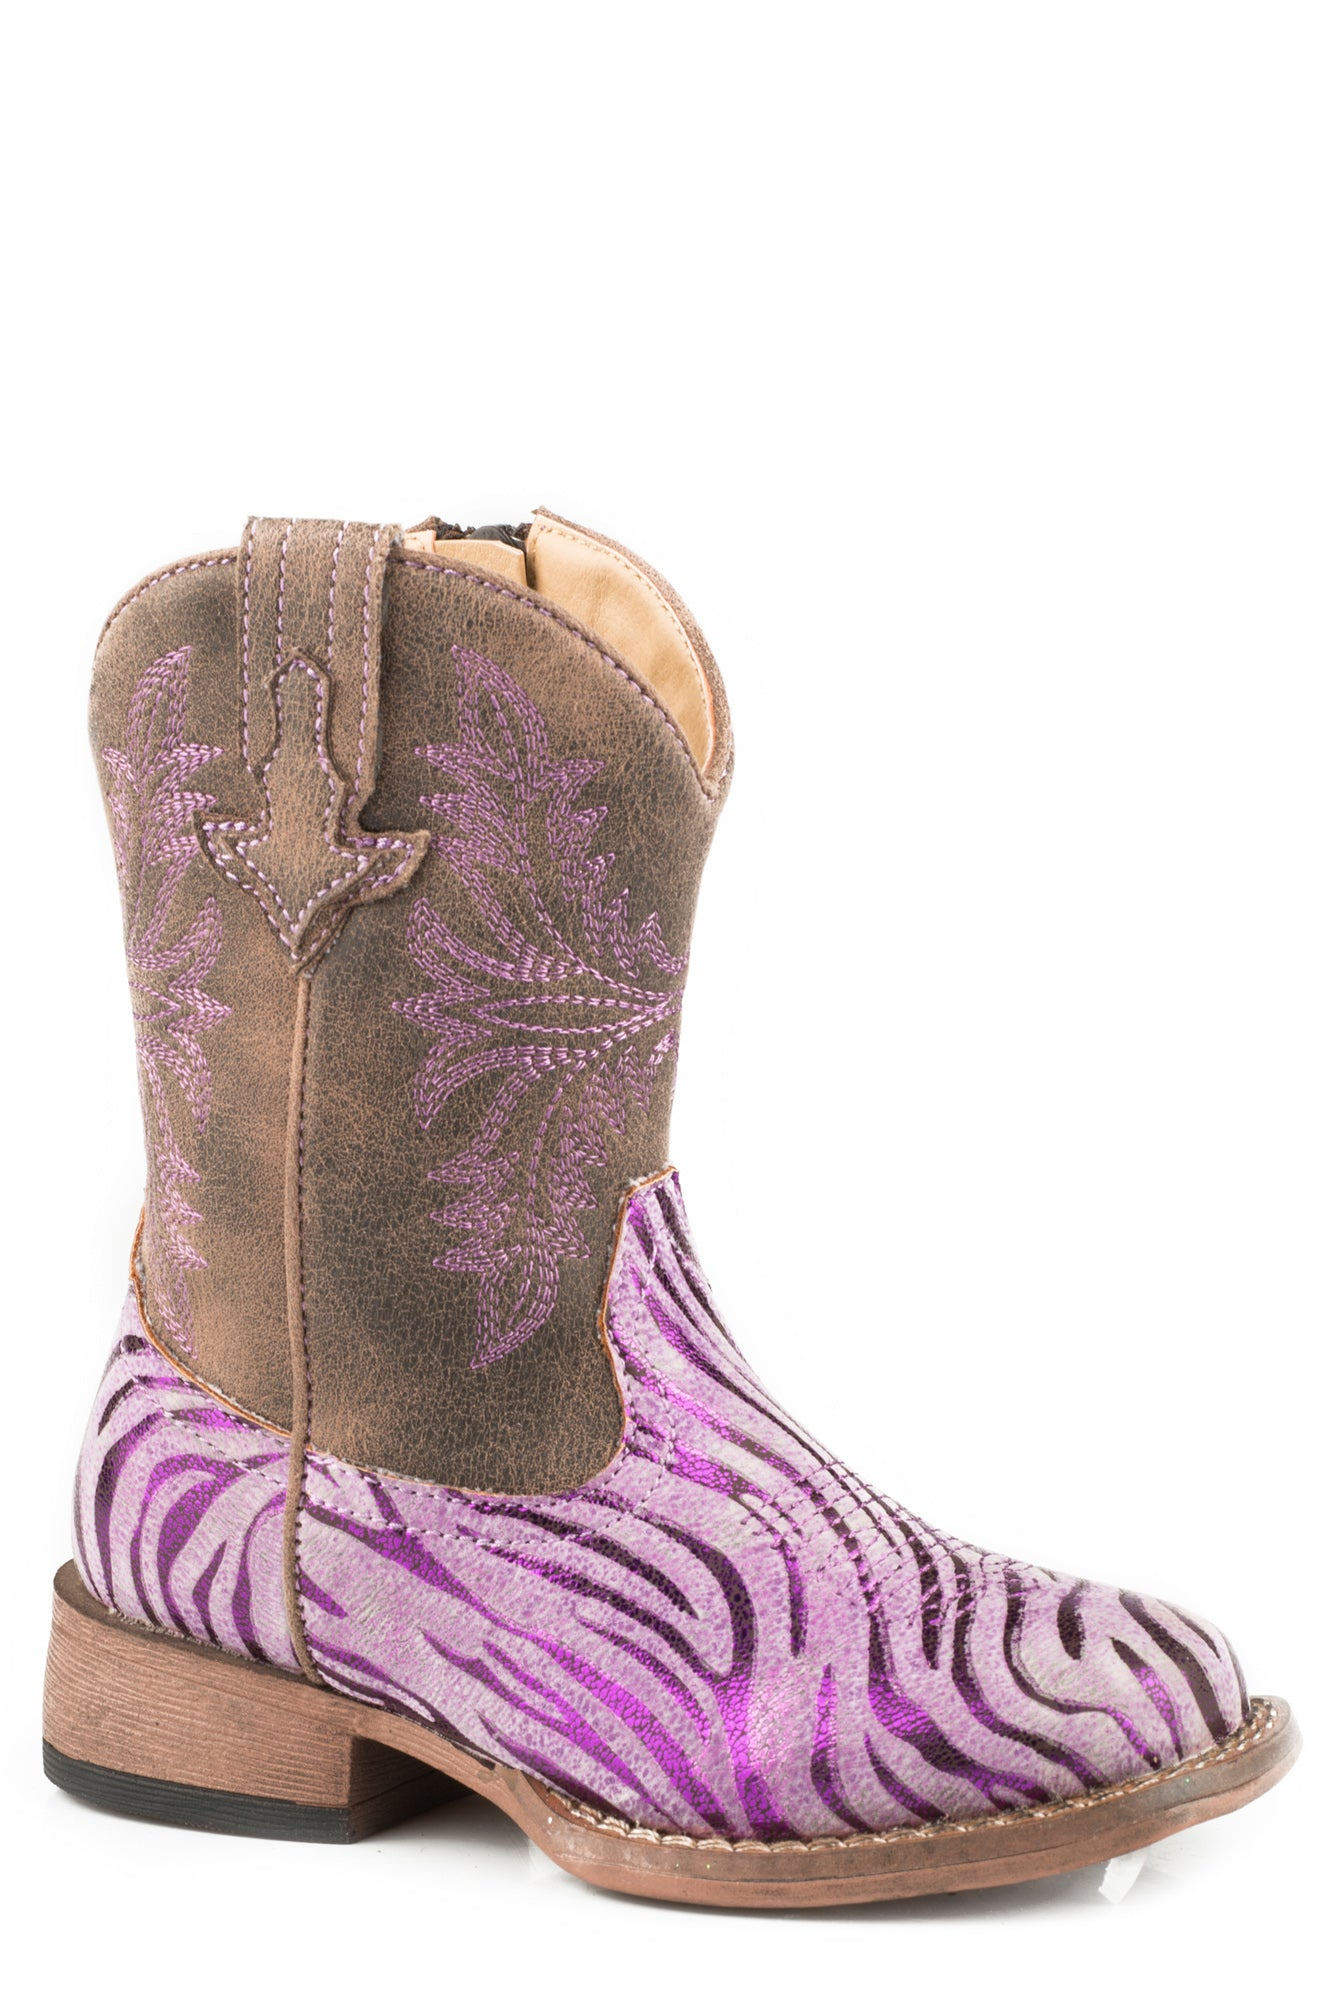 hot-selling cheap new product top brands Roper Toddler Girls Purple Faux Leather Metallic Zebra Cowboy Boots